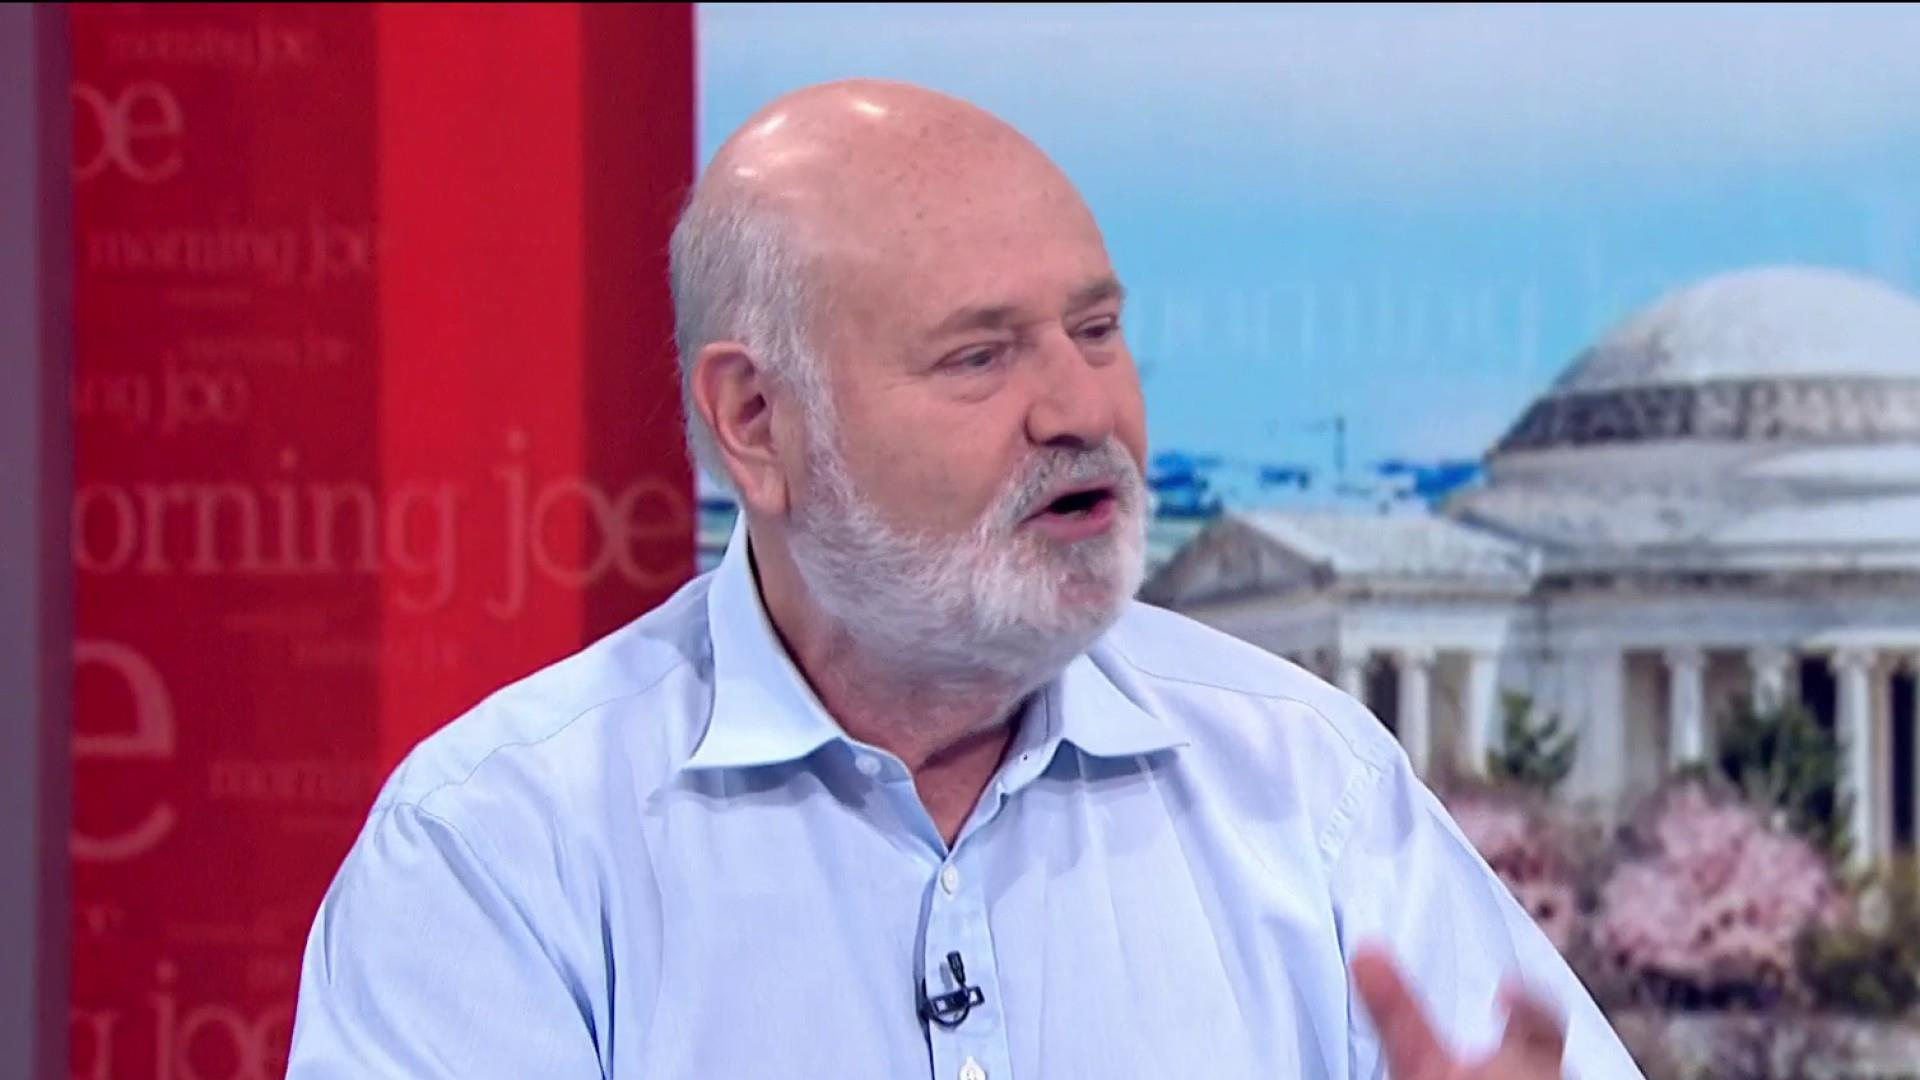 Reiner on 'Shock and Awe,' truth in the age of Trump